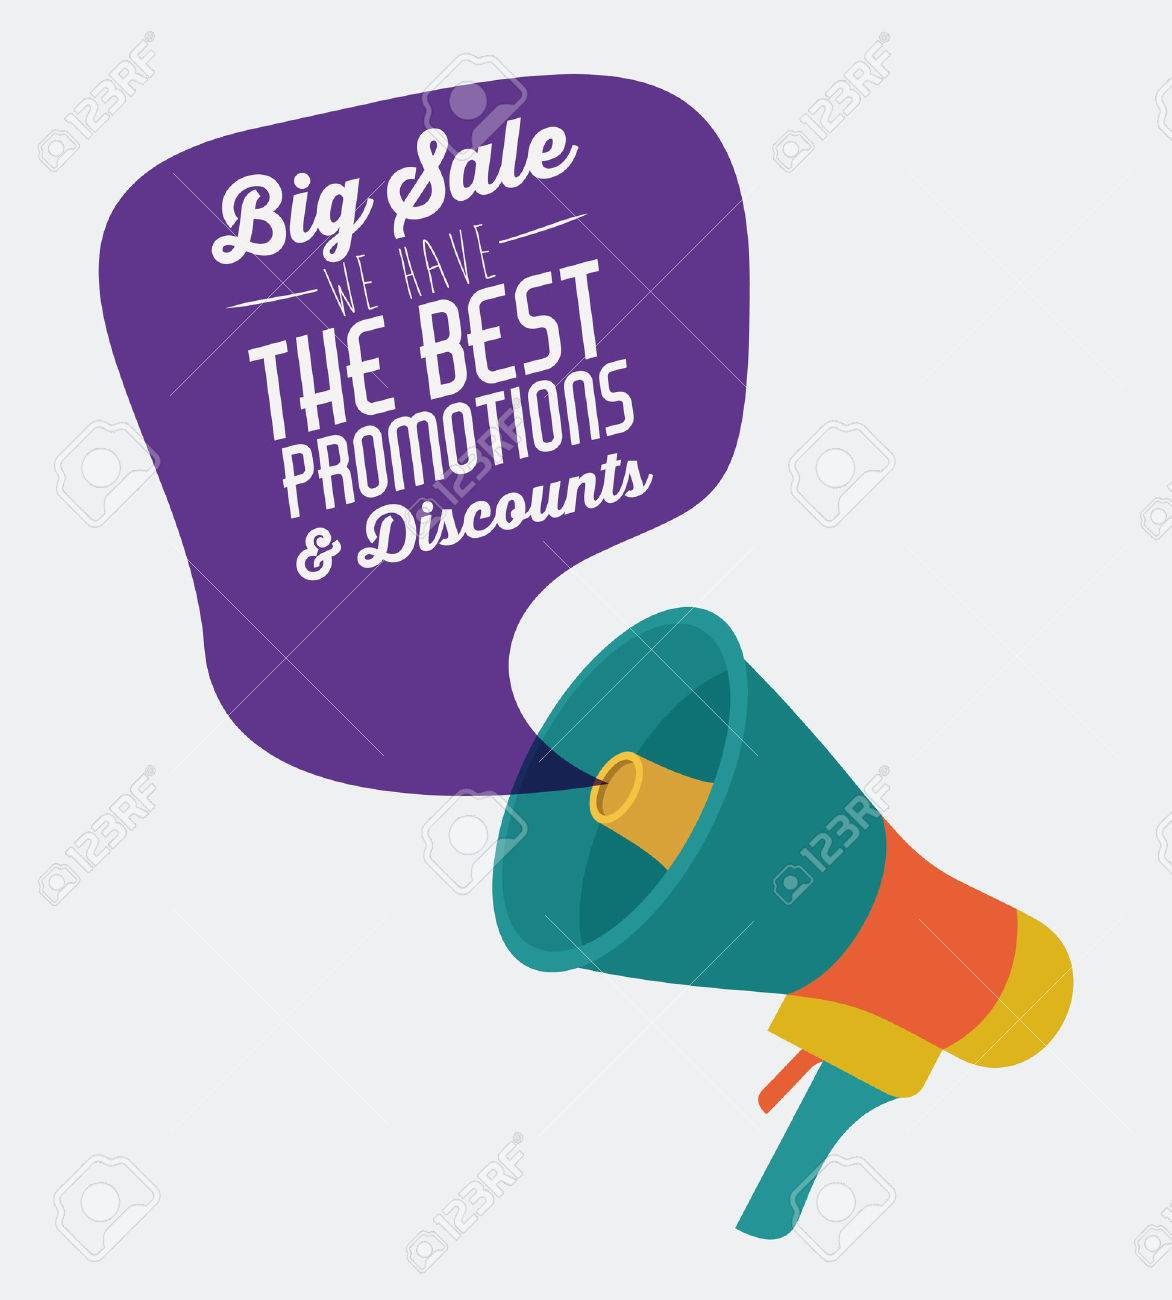 Promotions and discounts message digital design - 44930409